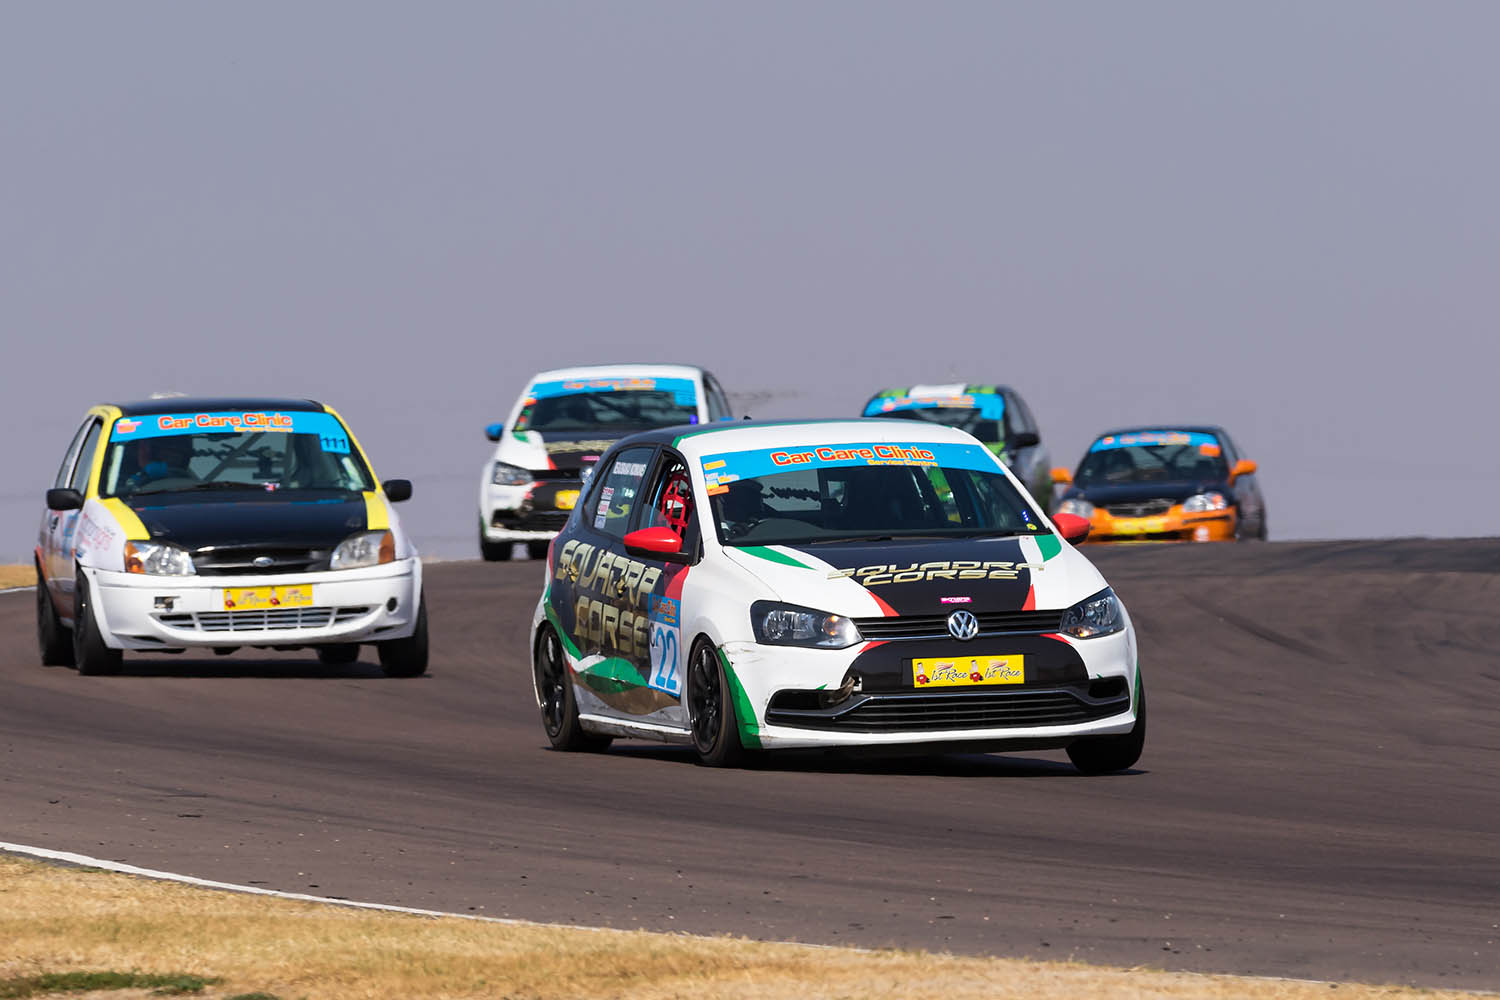 Komane leads de Lange and the rest of the Class C pack